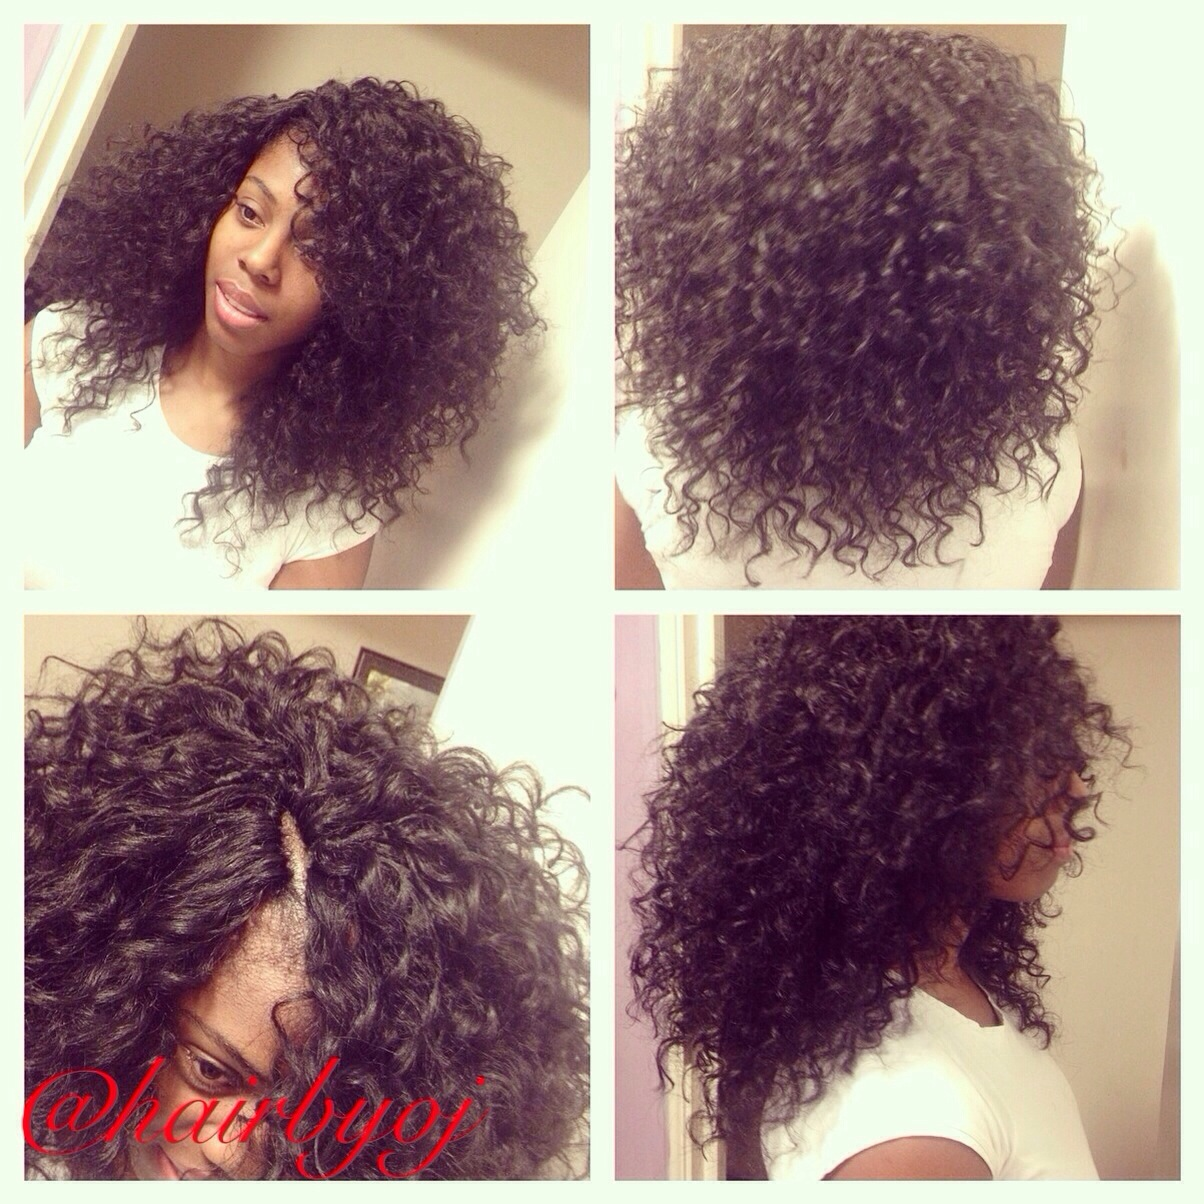 Crochet Braids Curly : Chest length curly crochet braids with versatile side and middle ...